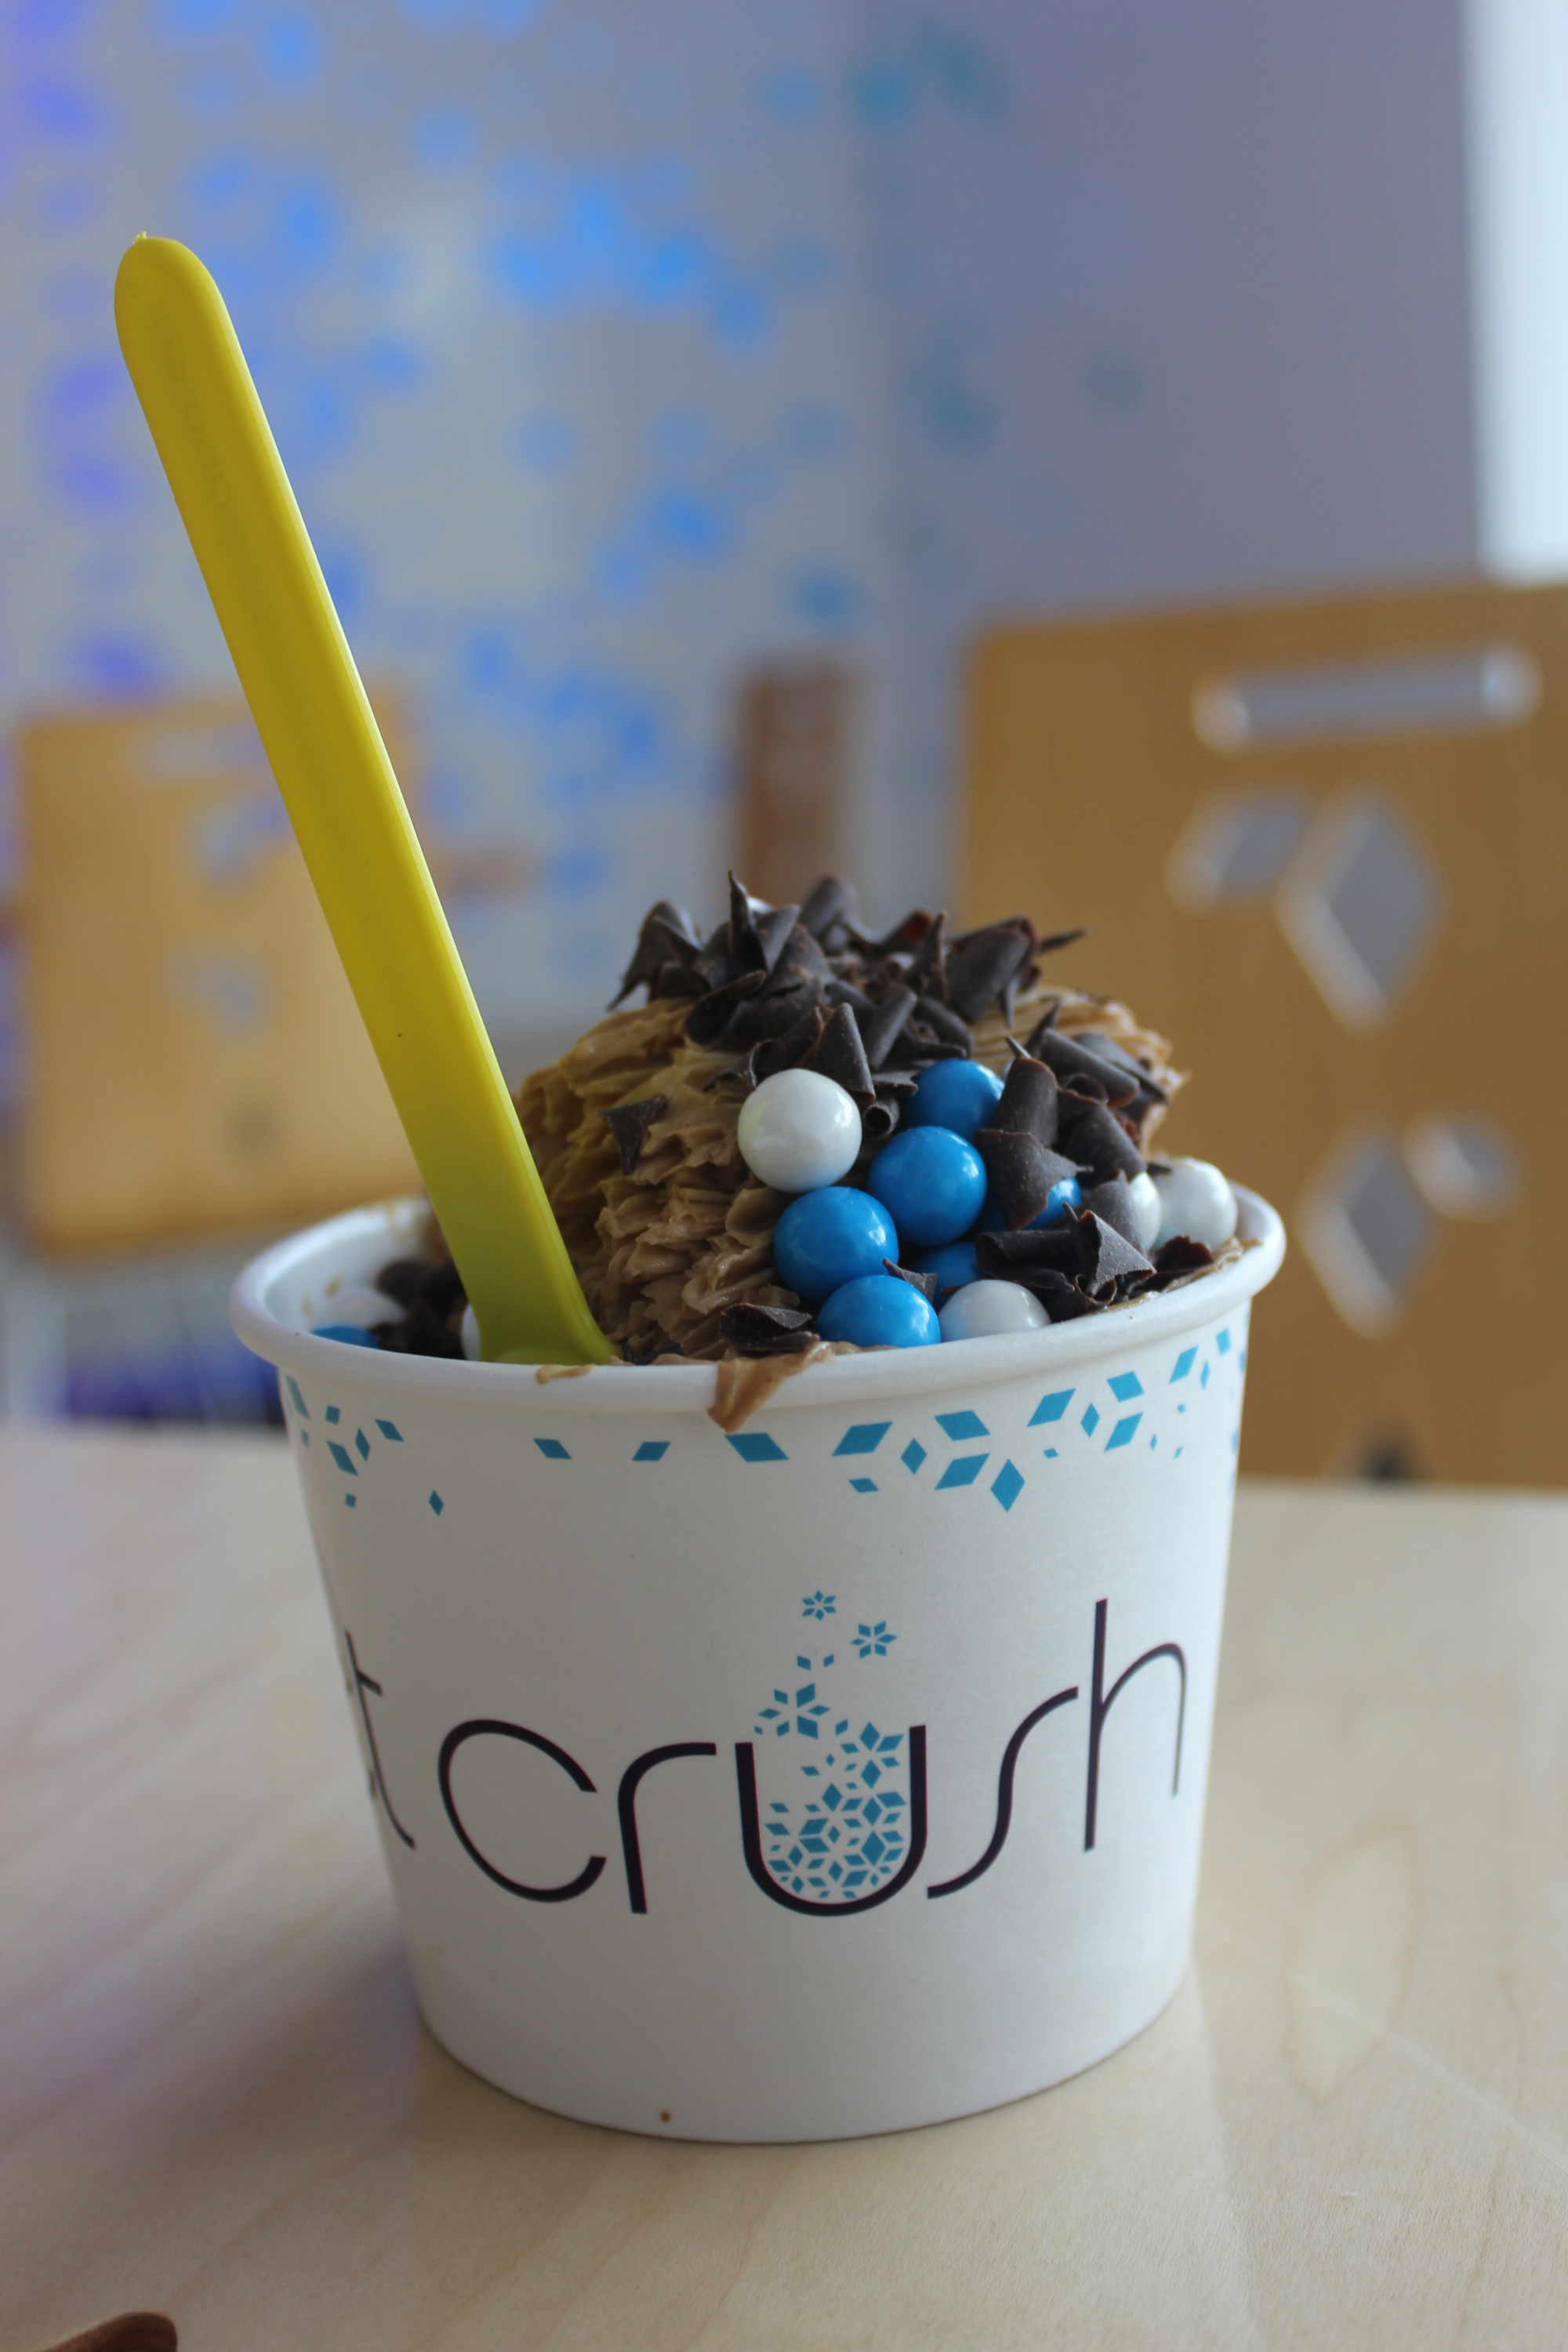 Sweet Crush Ice Bar offers refreshing desserts without the guilt that comes with indulging in calorie-loaded ice cream.